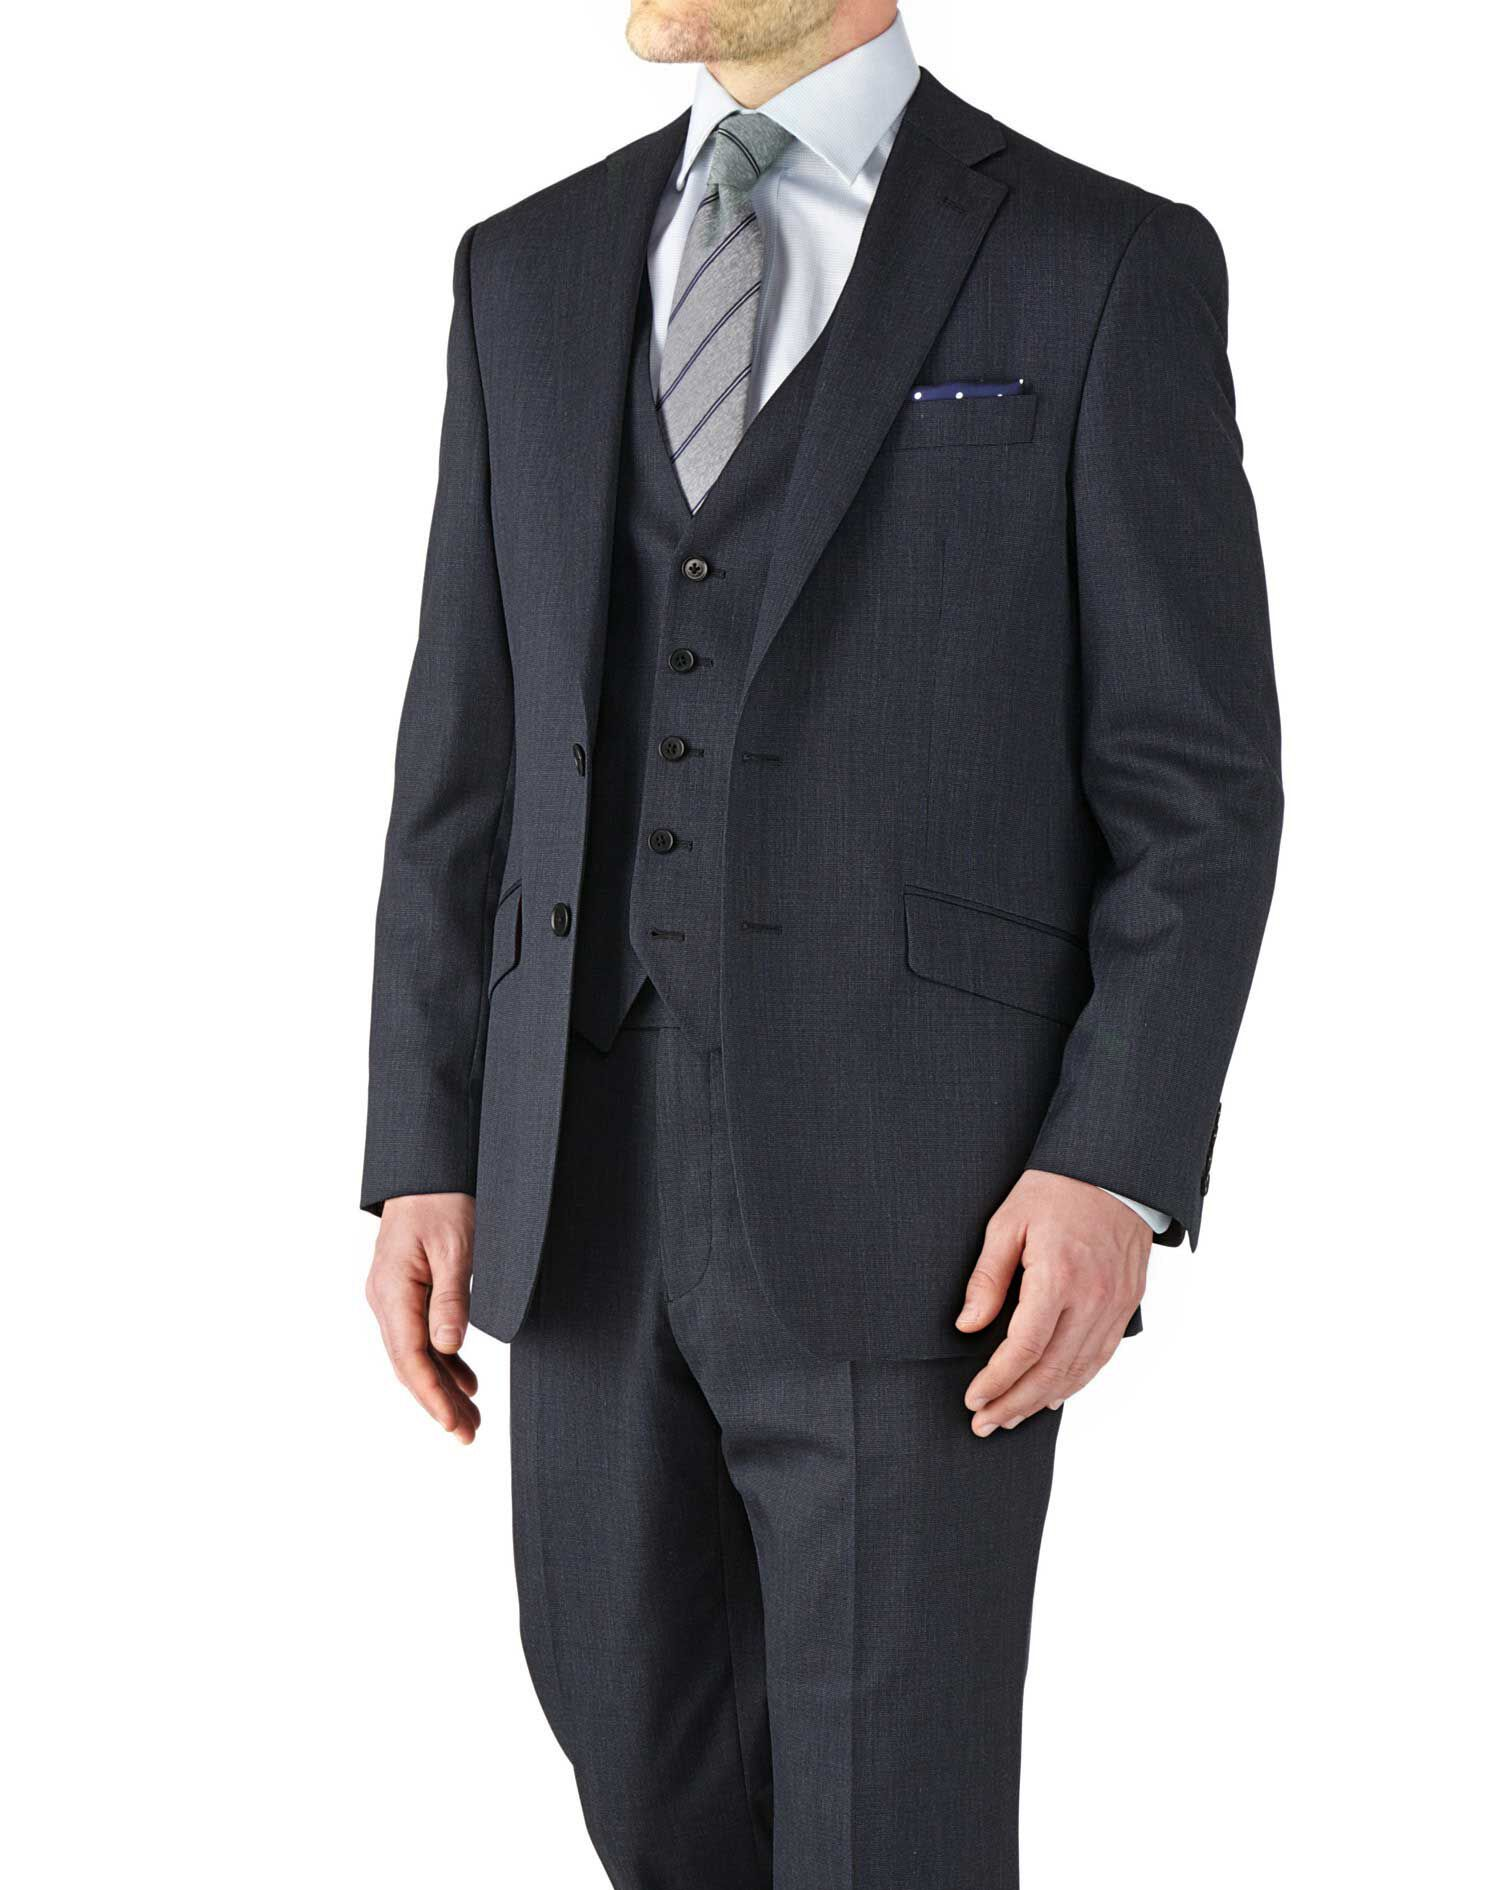 Navy Classic Fit End-On-End Business Suit Wool Jacket Size 42 by Charles Tyrwhitt